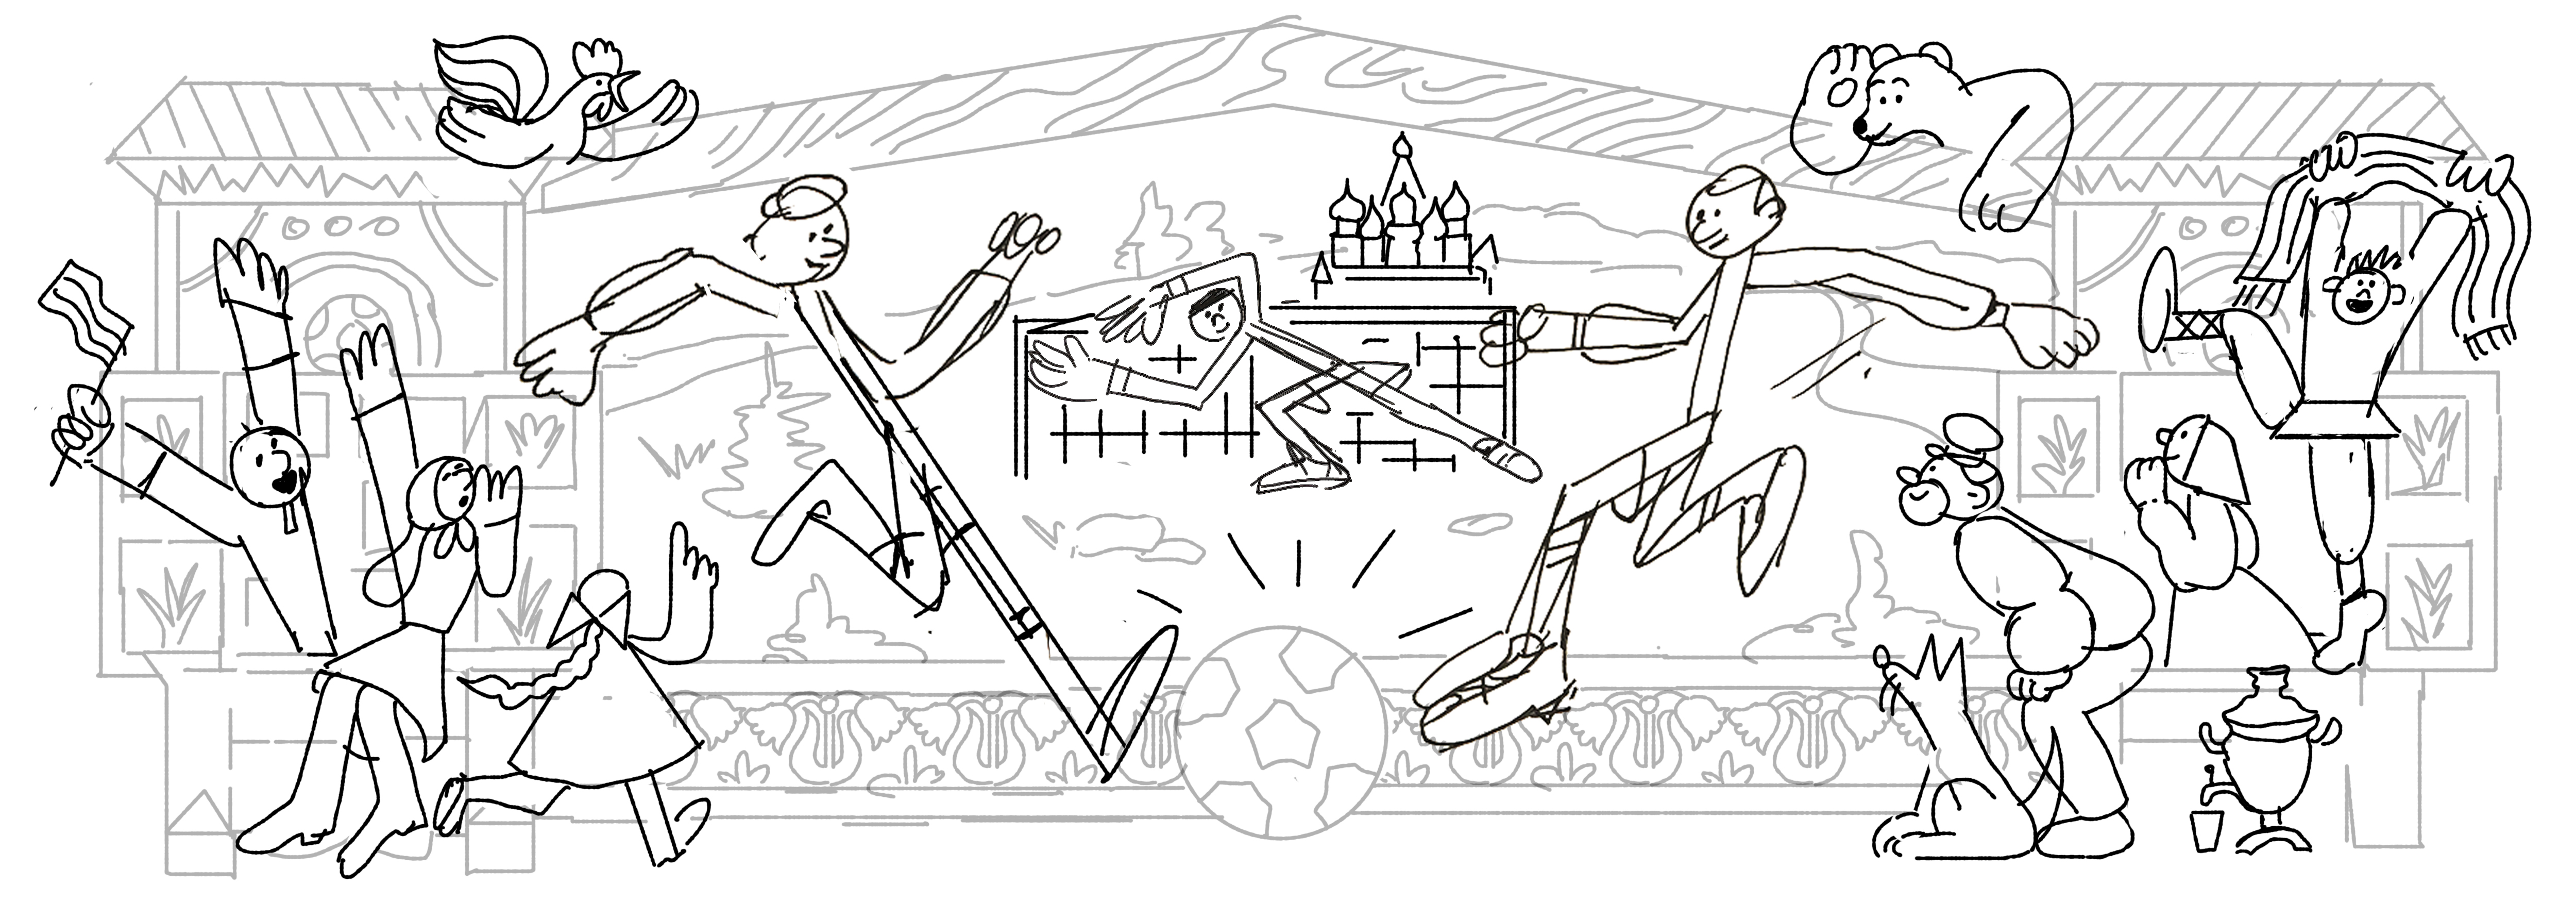 Russia World Cup Doodle Sketch